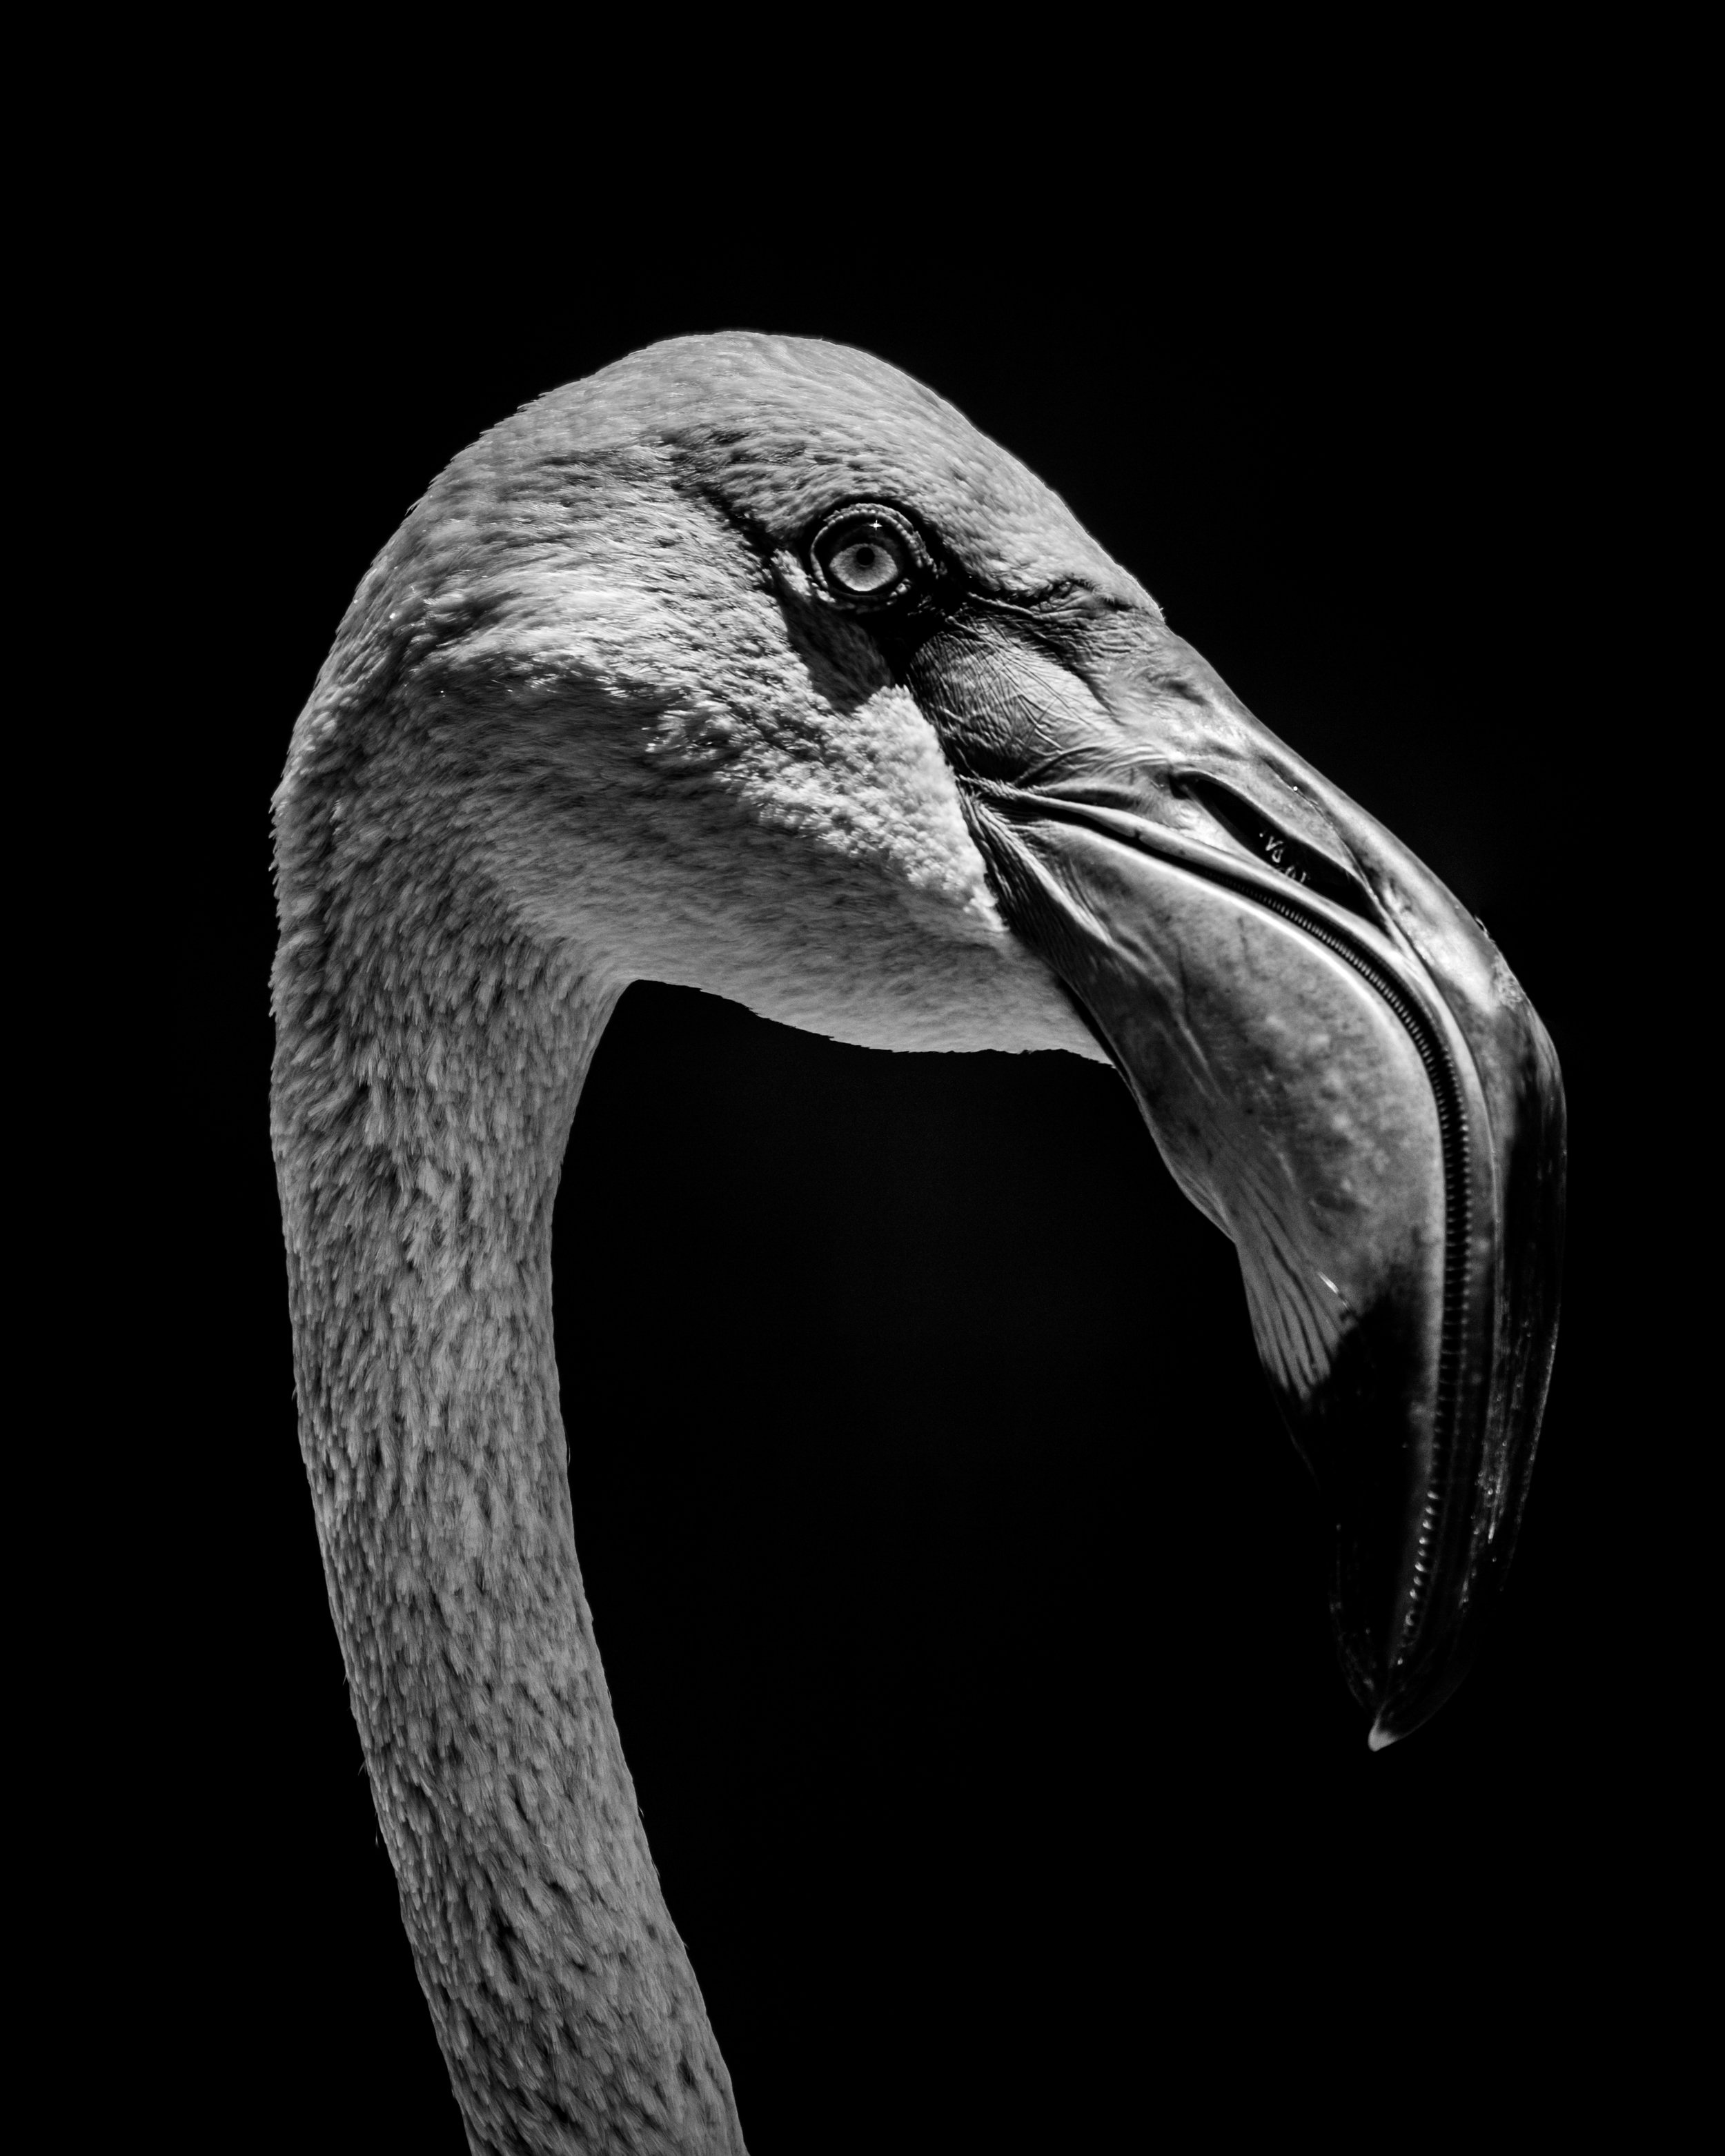 Chilean flamingo head against black background